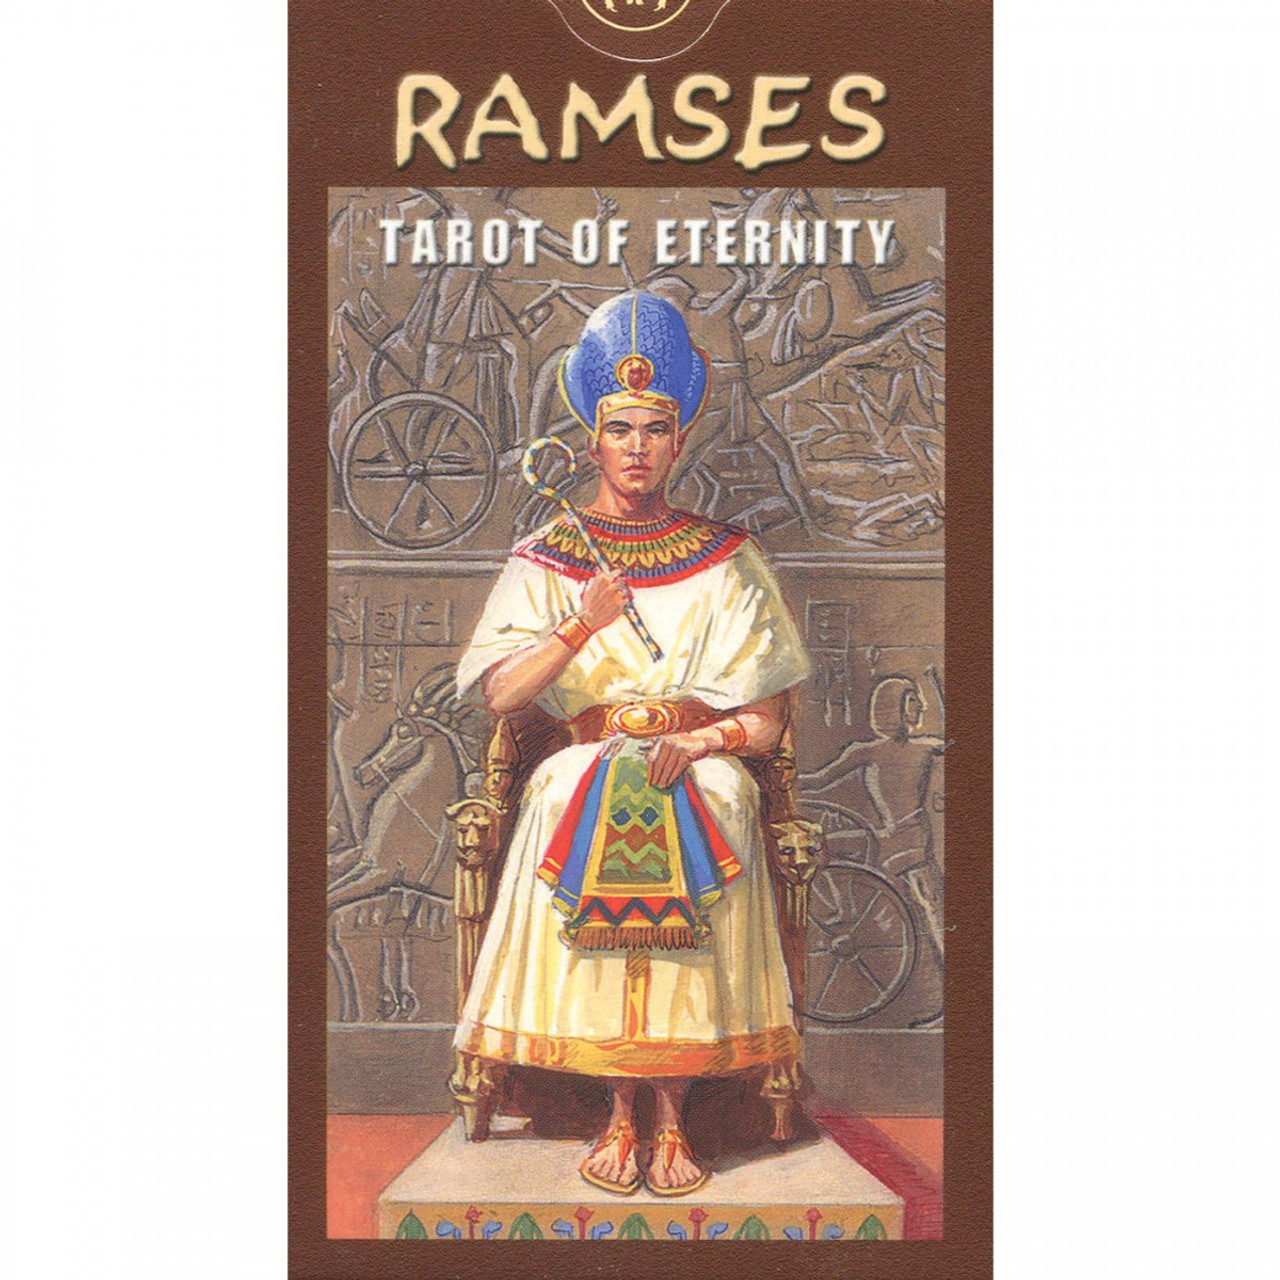 Ramses Tarot of Eternity Cards